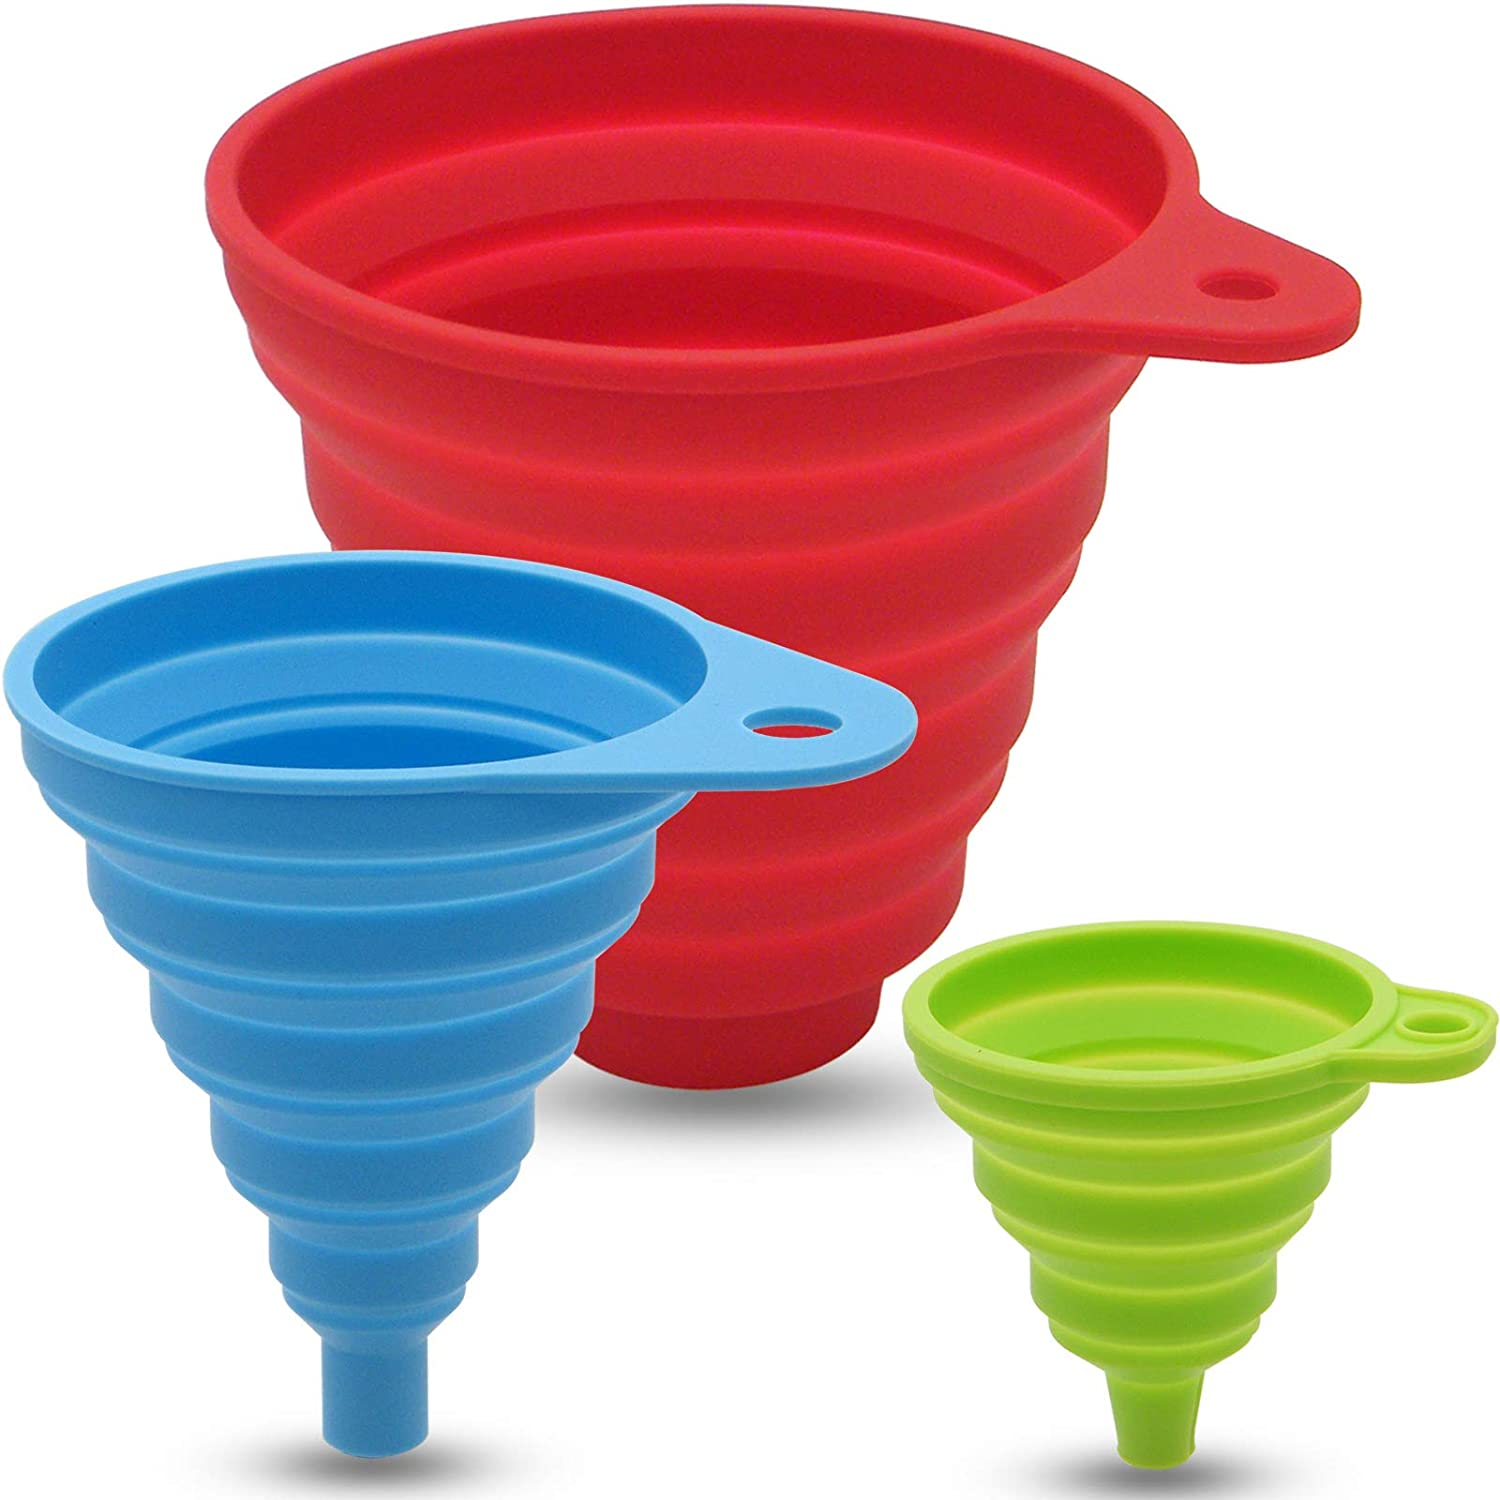 3 Sizes of Kitchen Funnel Set, Food Grade Funnels for Filling Bottles, PremiumSilicone Collapsible Funnel for Transferring Liquid,Powder Transfer, Large Wide Mouth Canning Funnel, Small Funnel